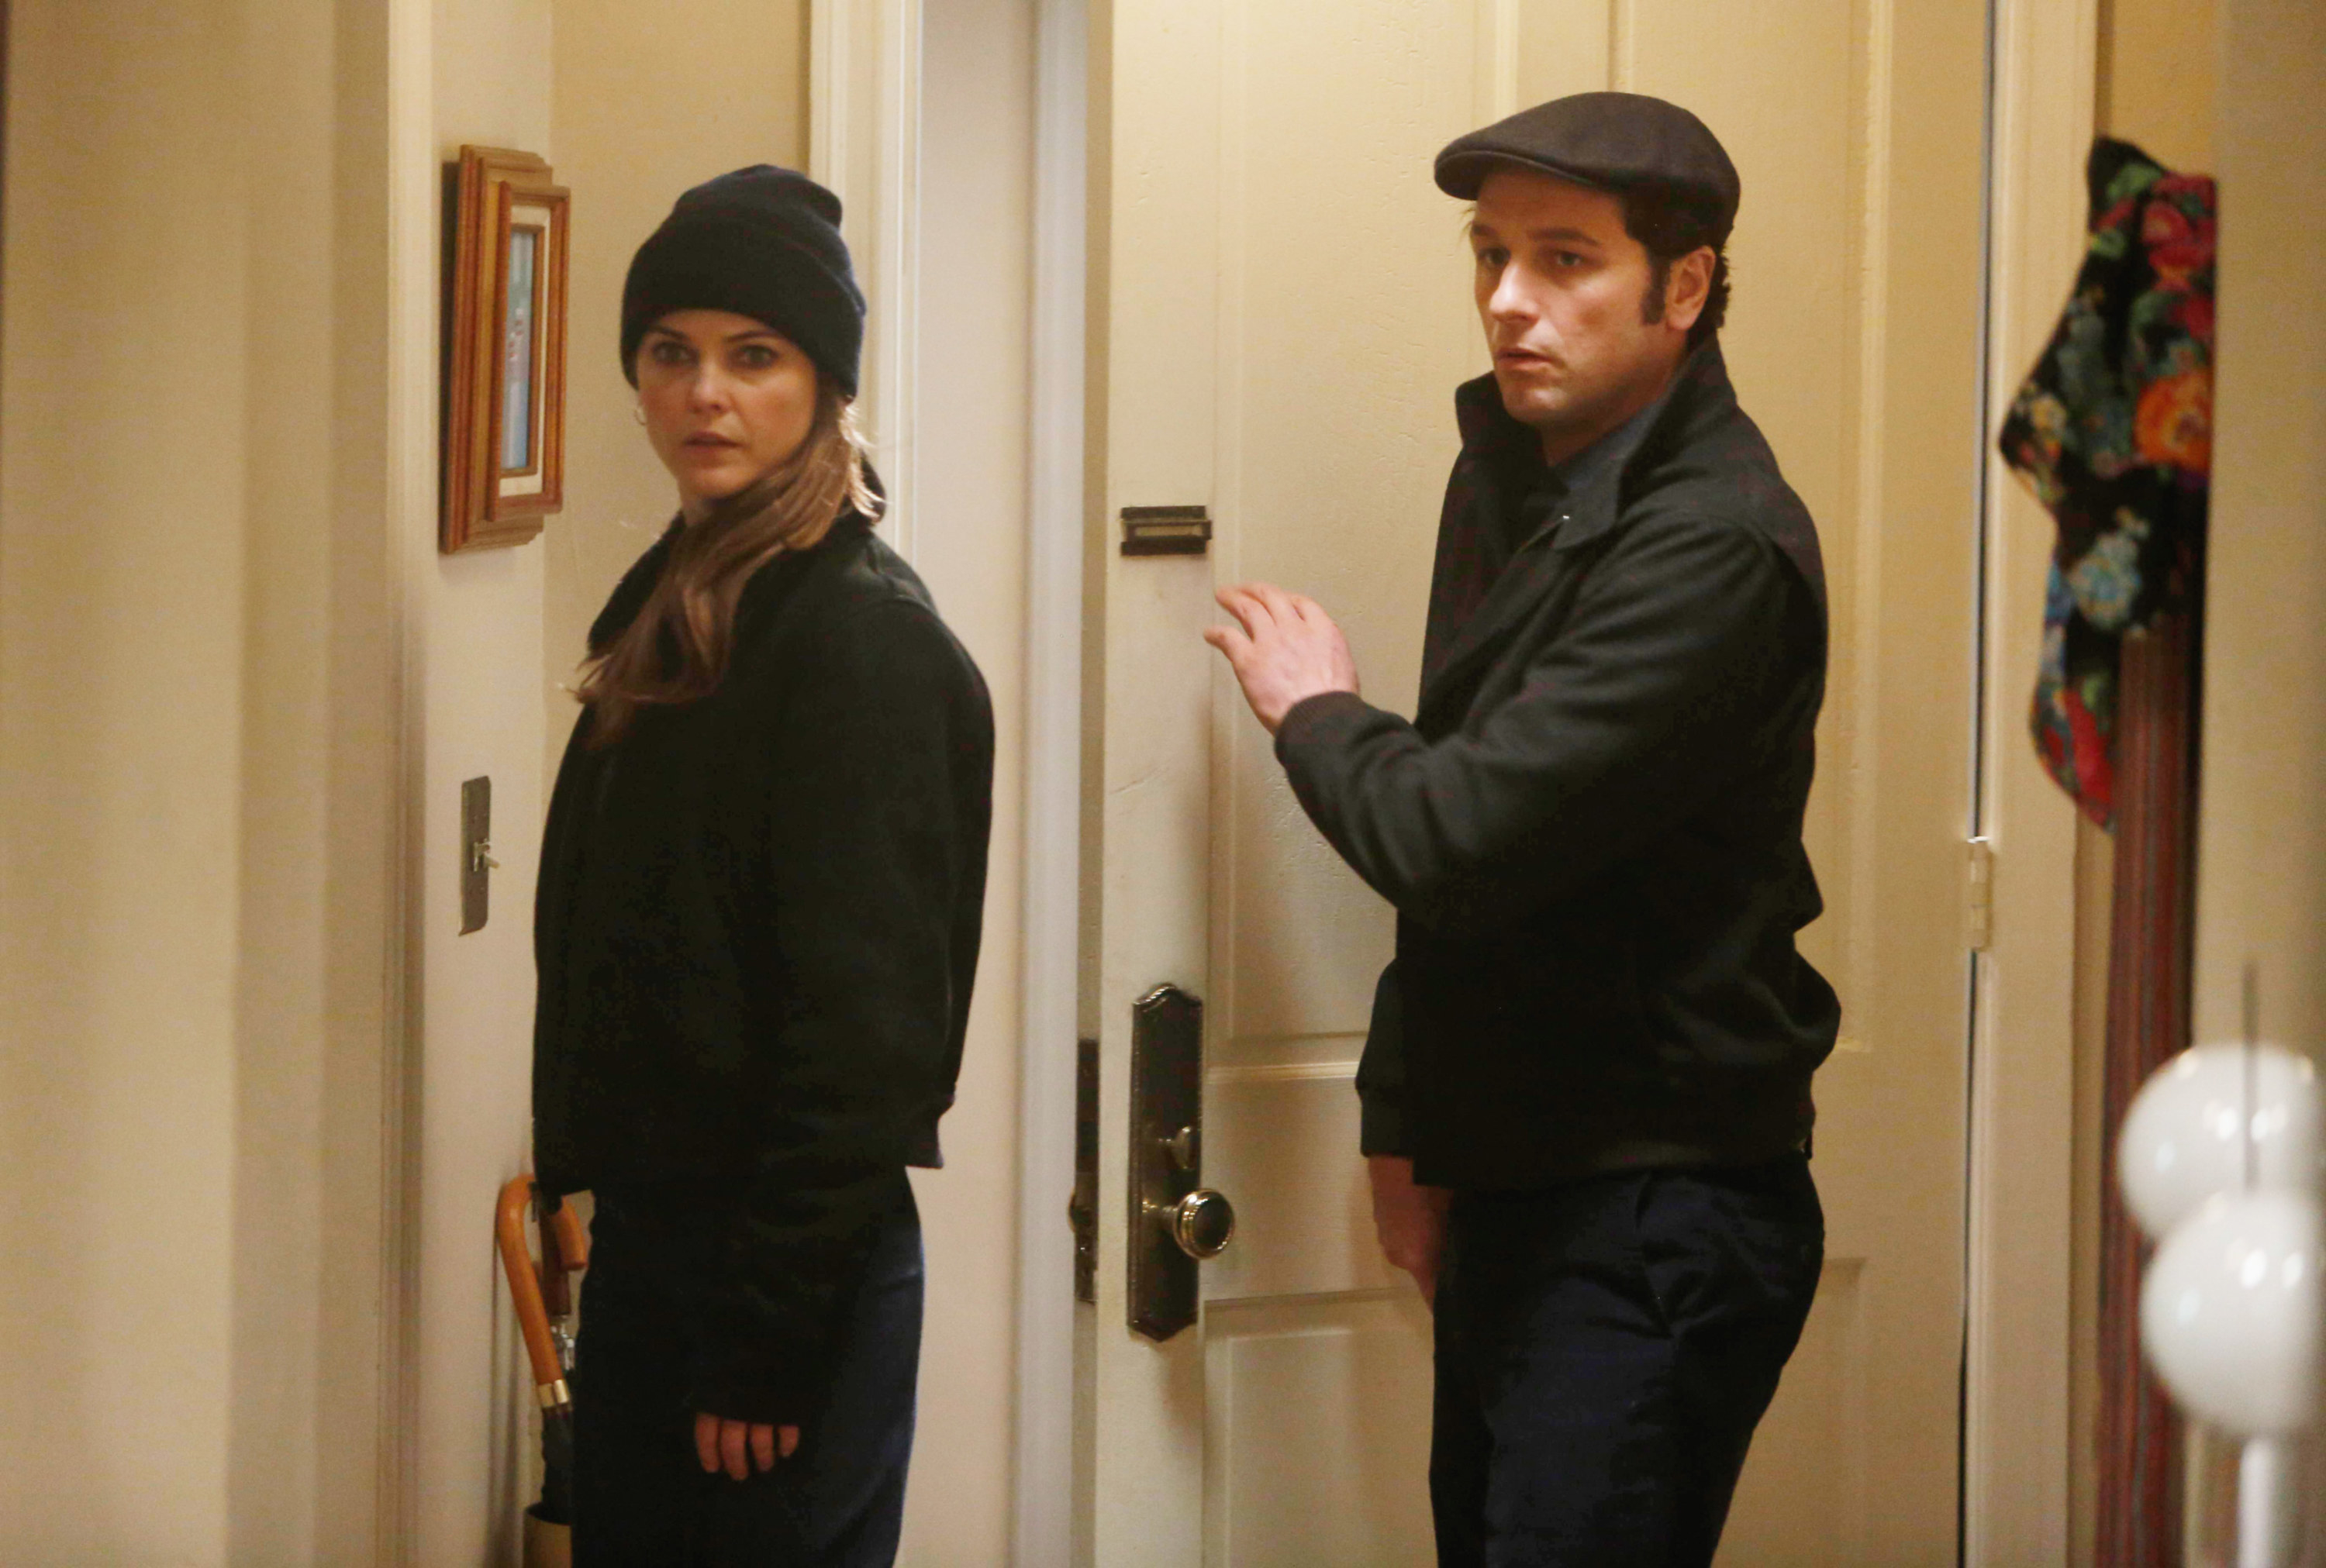 Keri Russell and Matthew Rhys as Elizabeth and Philip Jennings in The Americans